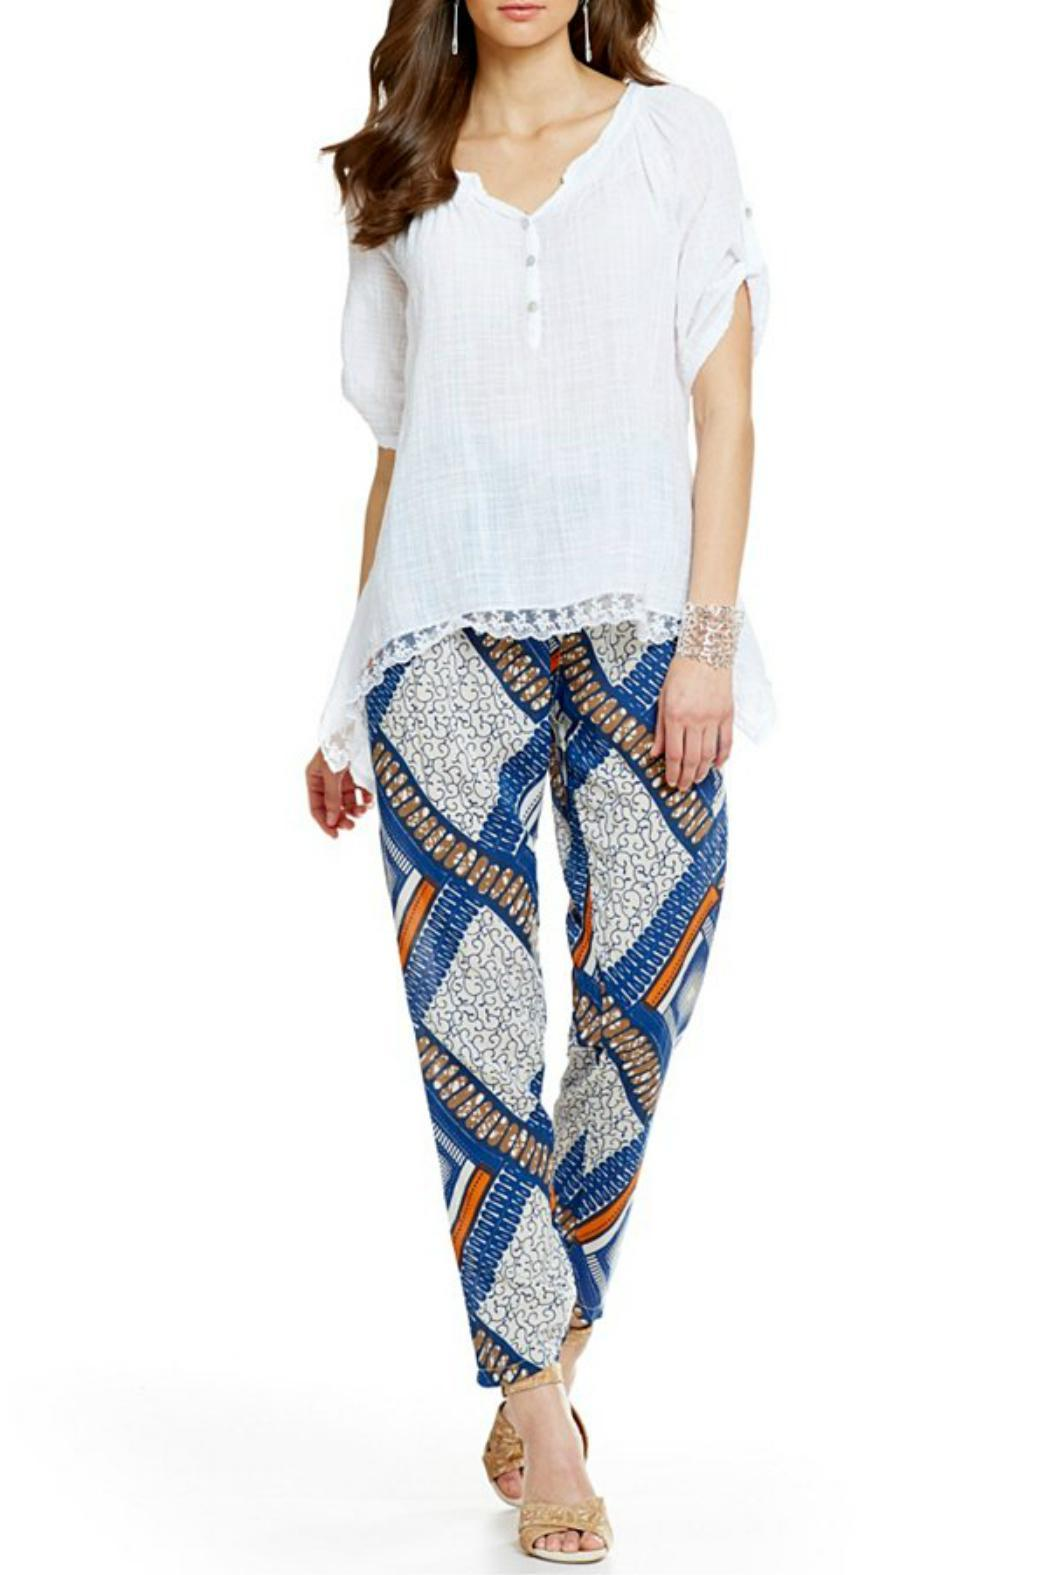 M Made In Italy Printed Pants From Canada By Envy Shoptiques